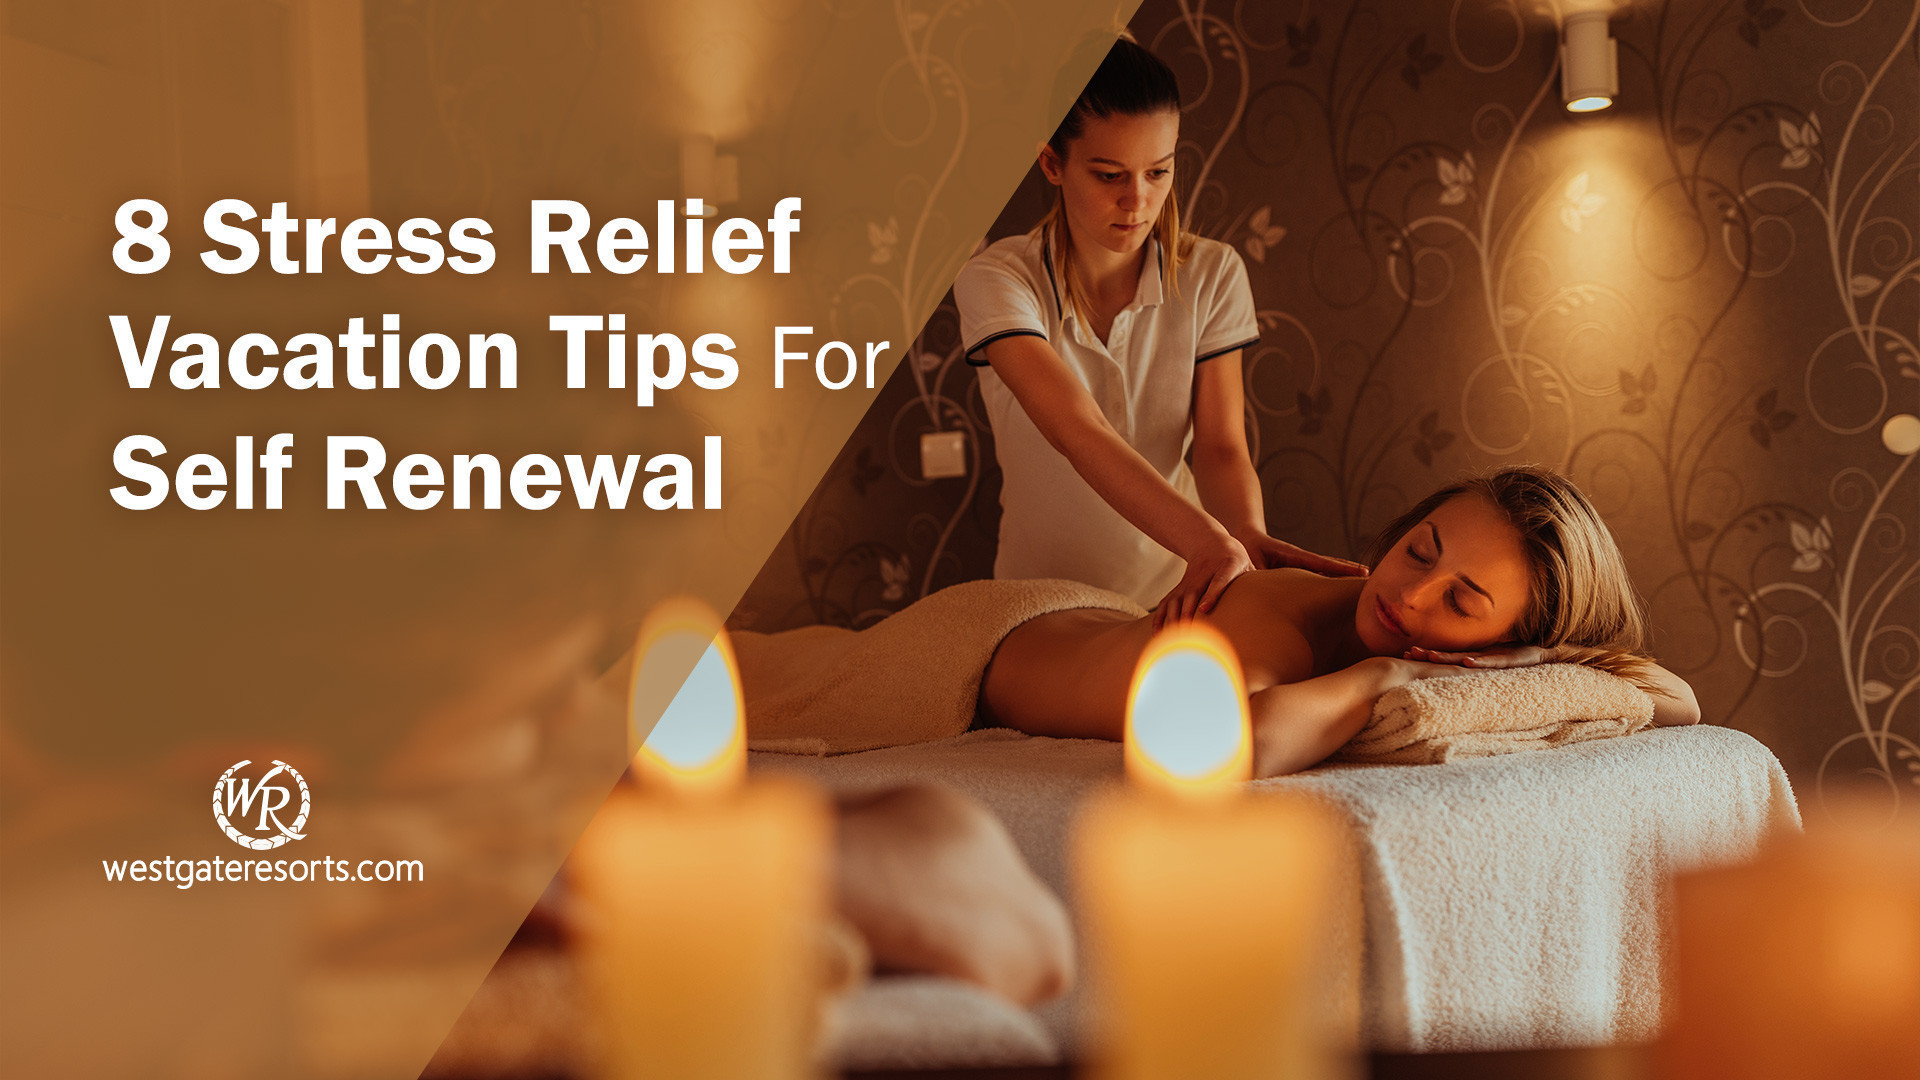 8 Stress Relief Vacation Tips For Self Renewal | Relaxing Stress Free Vacations